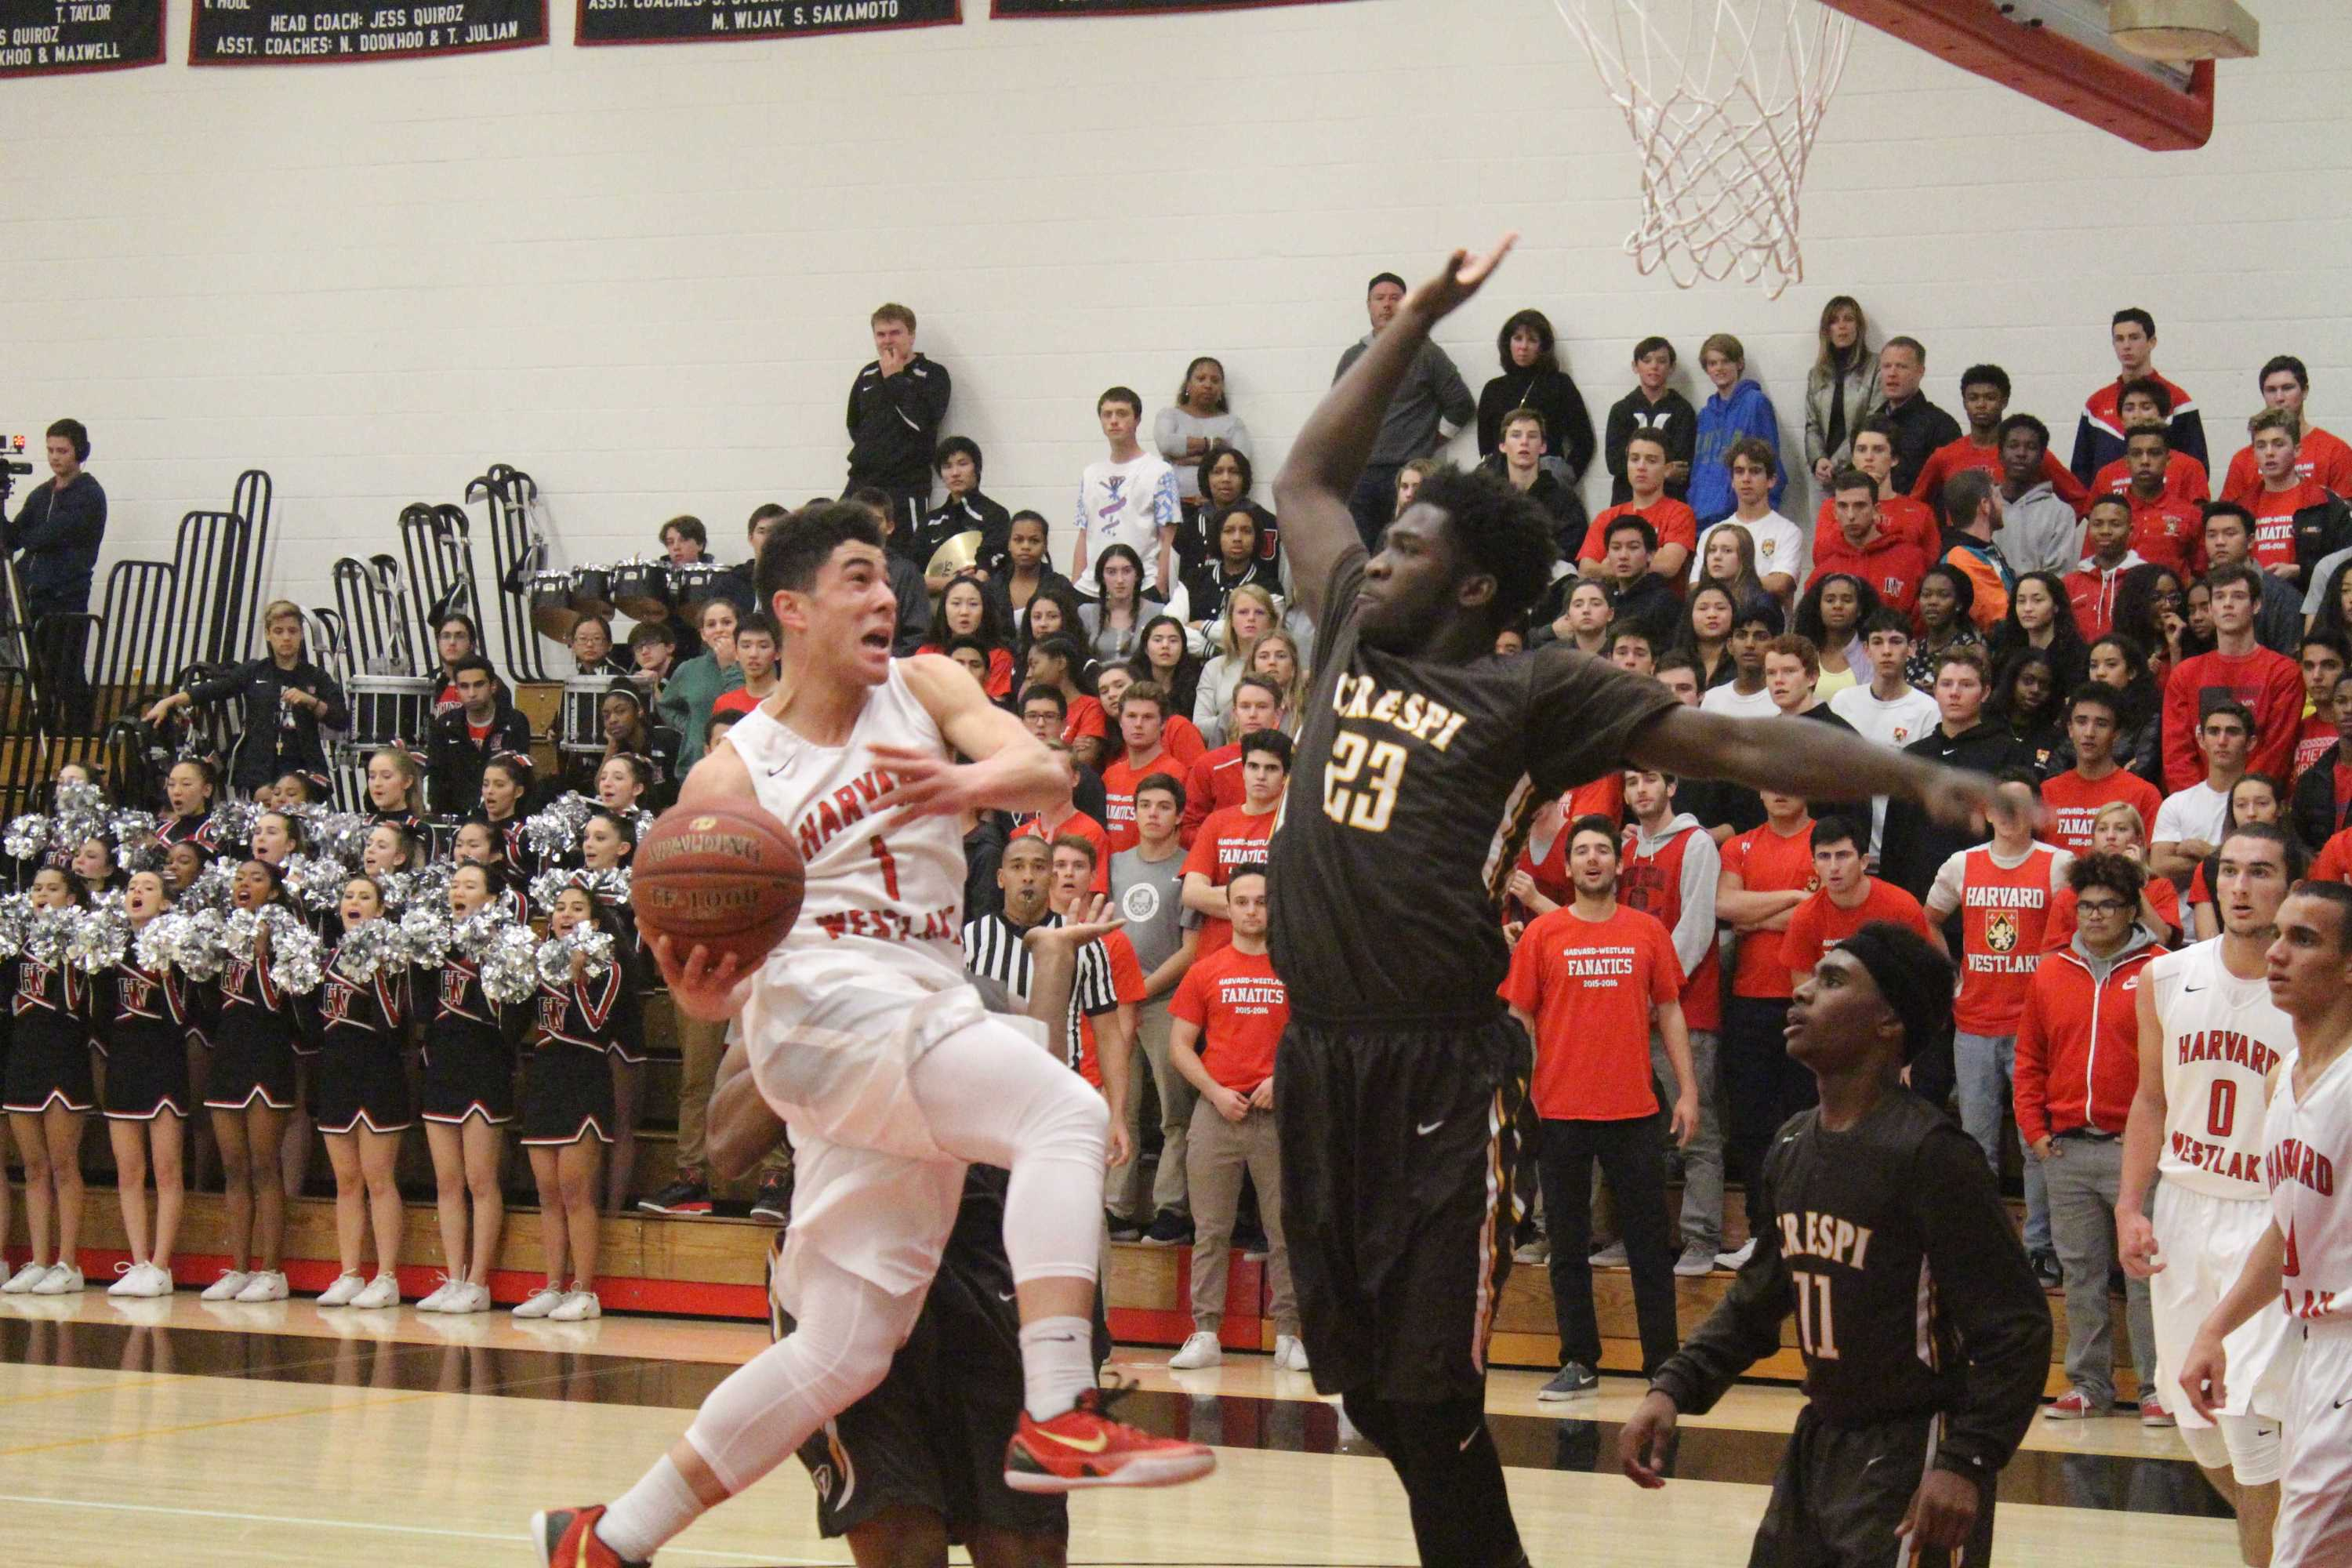 Carter Begel '17 goes up for a layup against a Crespi defender in the Wolverines' 77-75 loss to Crespi on Jan. 6. Credit: Cameron Stine/ Chronicle